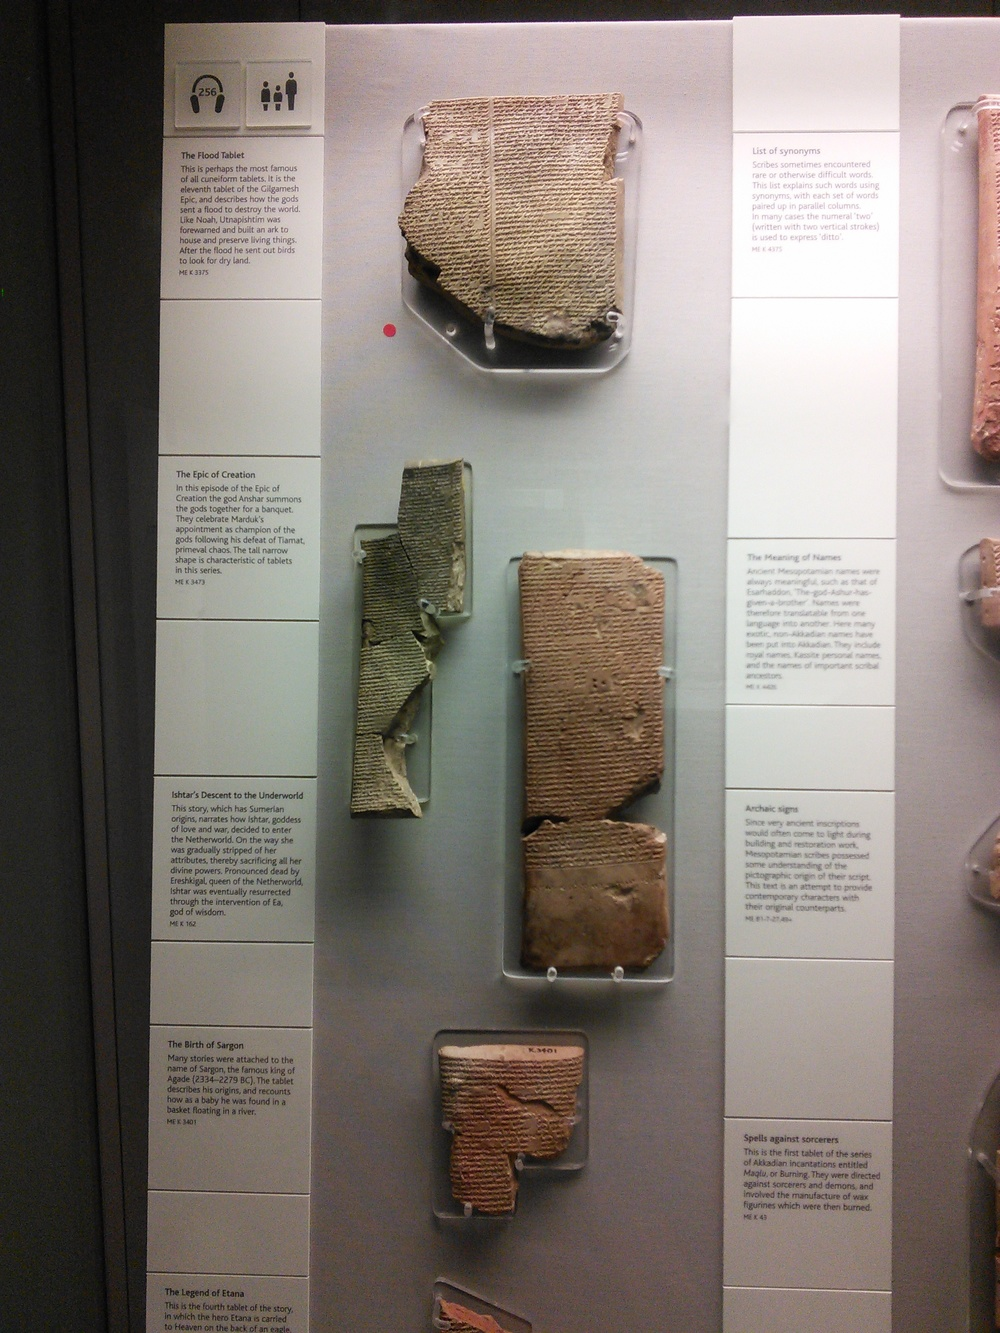 Tablets on Gilgamesh, how to read tablets, and a thesaurus